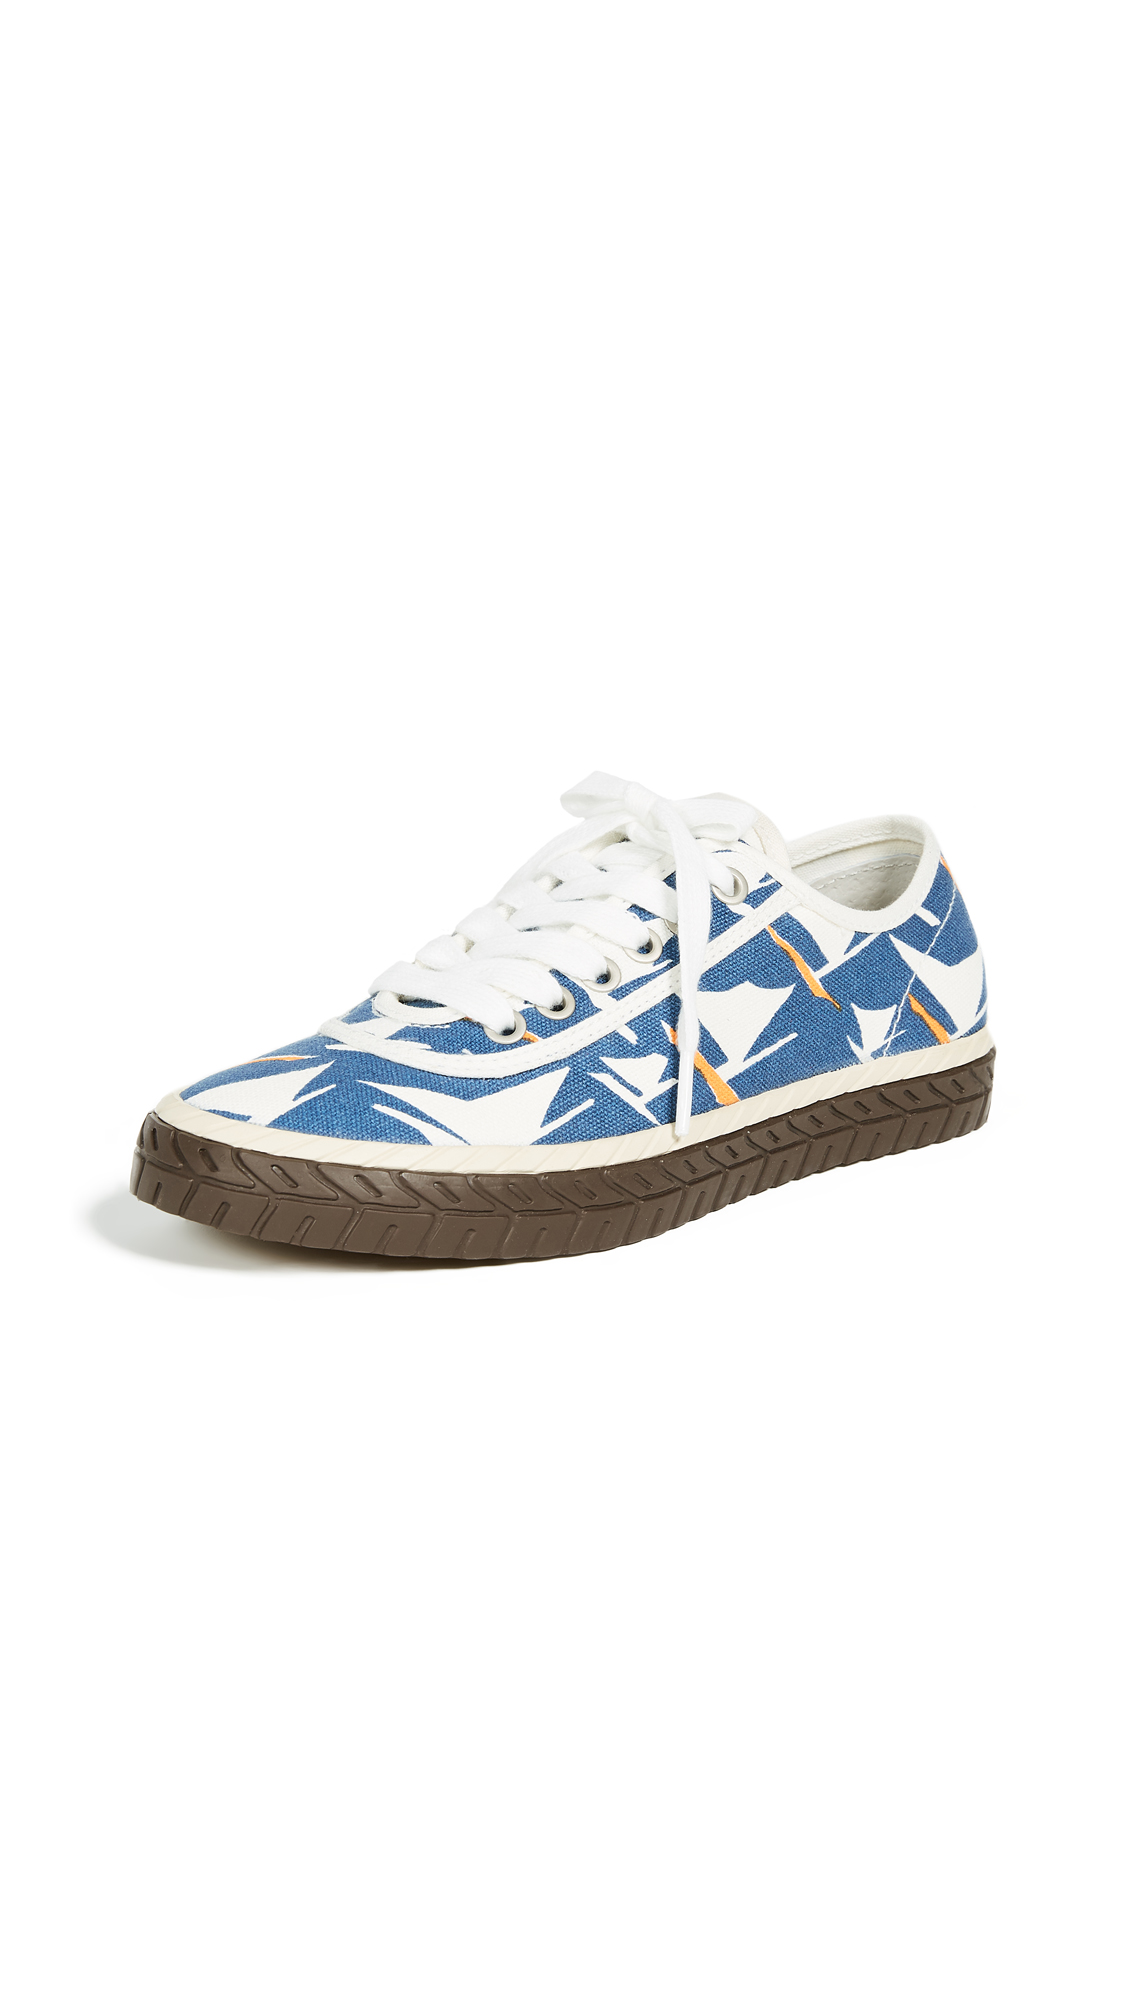 Marni Classic Sneakers - Blue